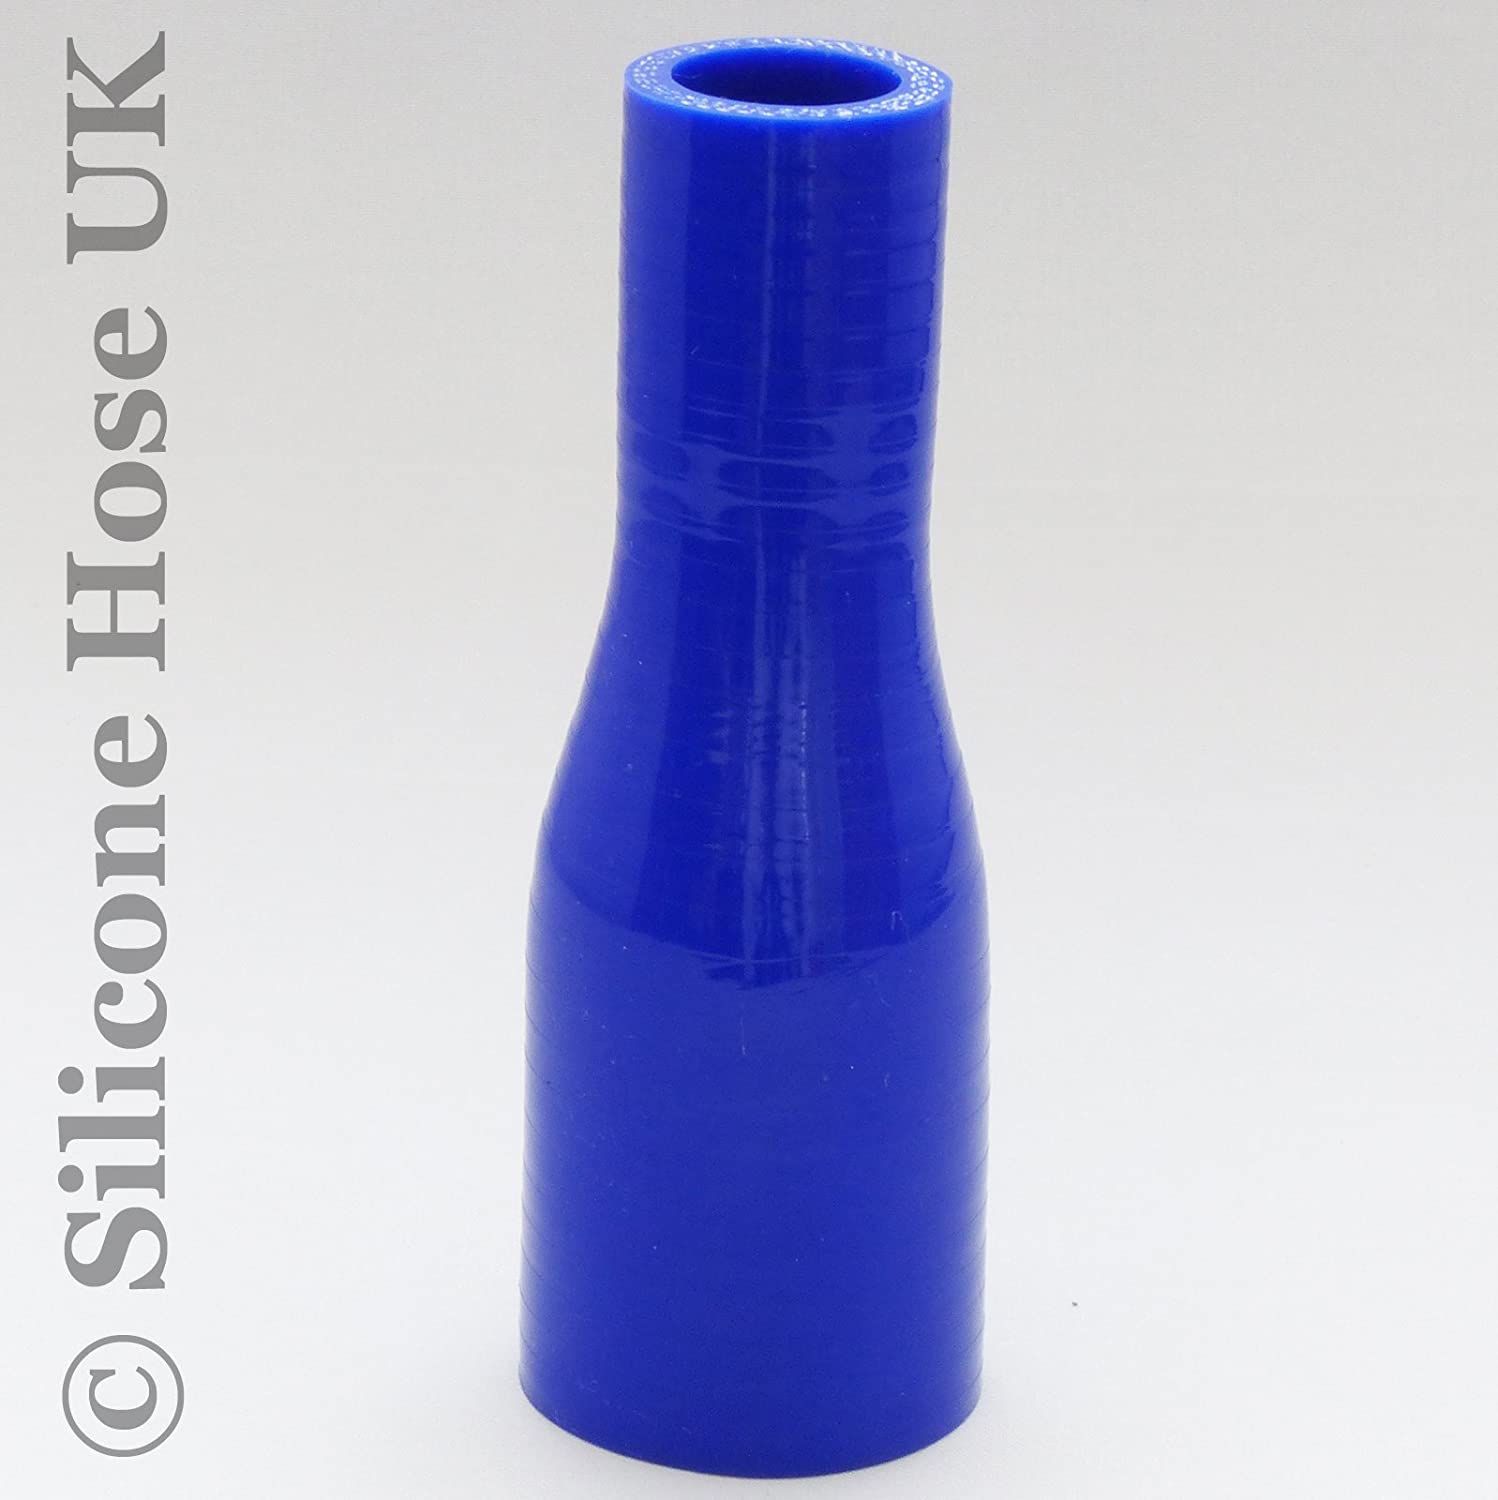 Straight Reinforced Silicone Reducer Inlet Connector Hose for Air or Water ID 32mm  28mm Blue